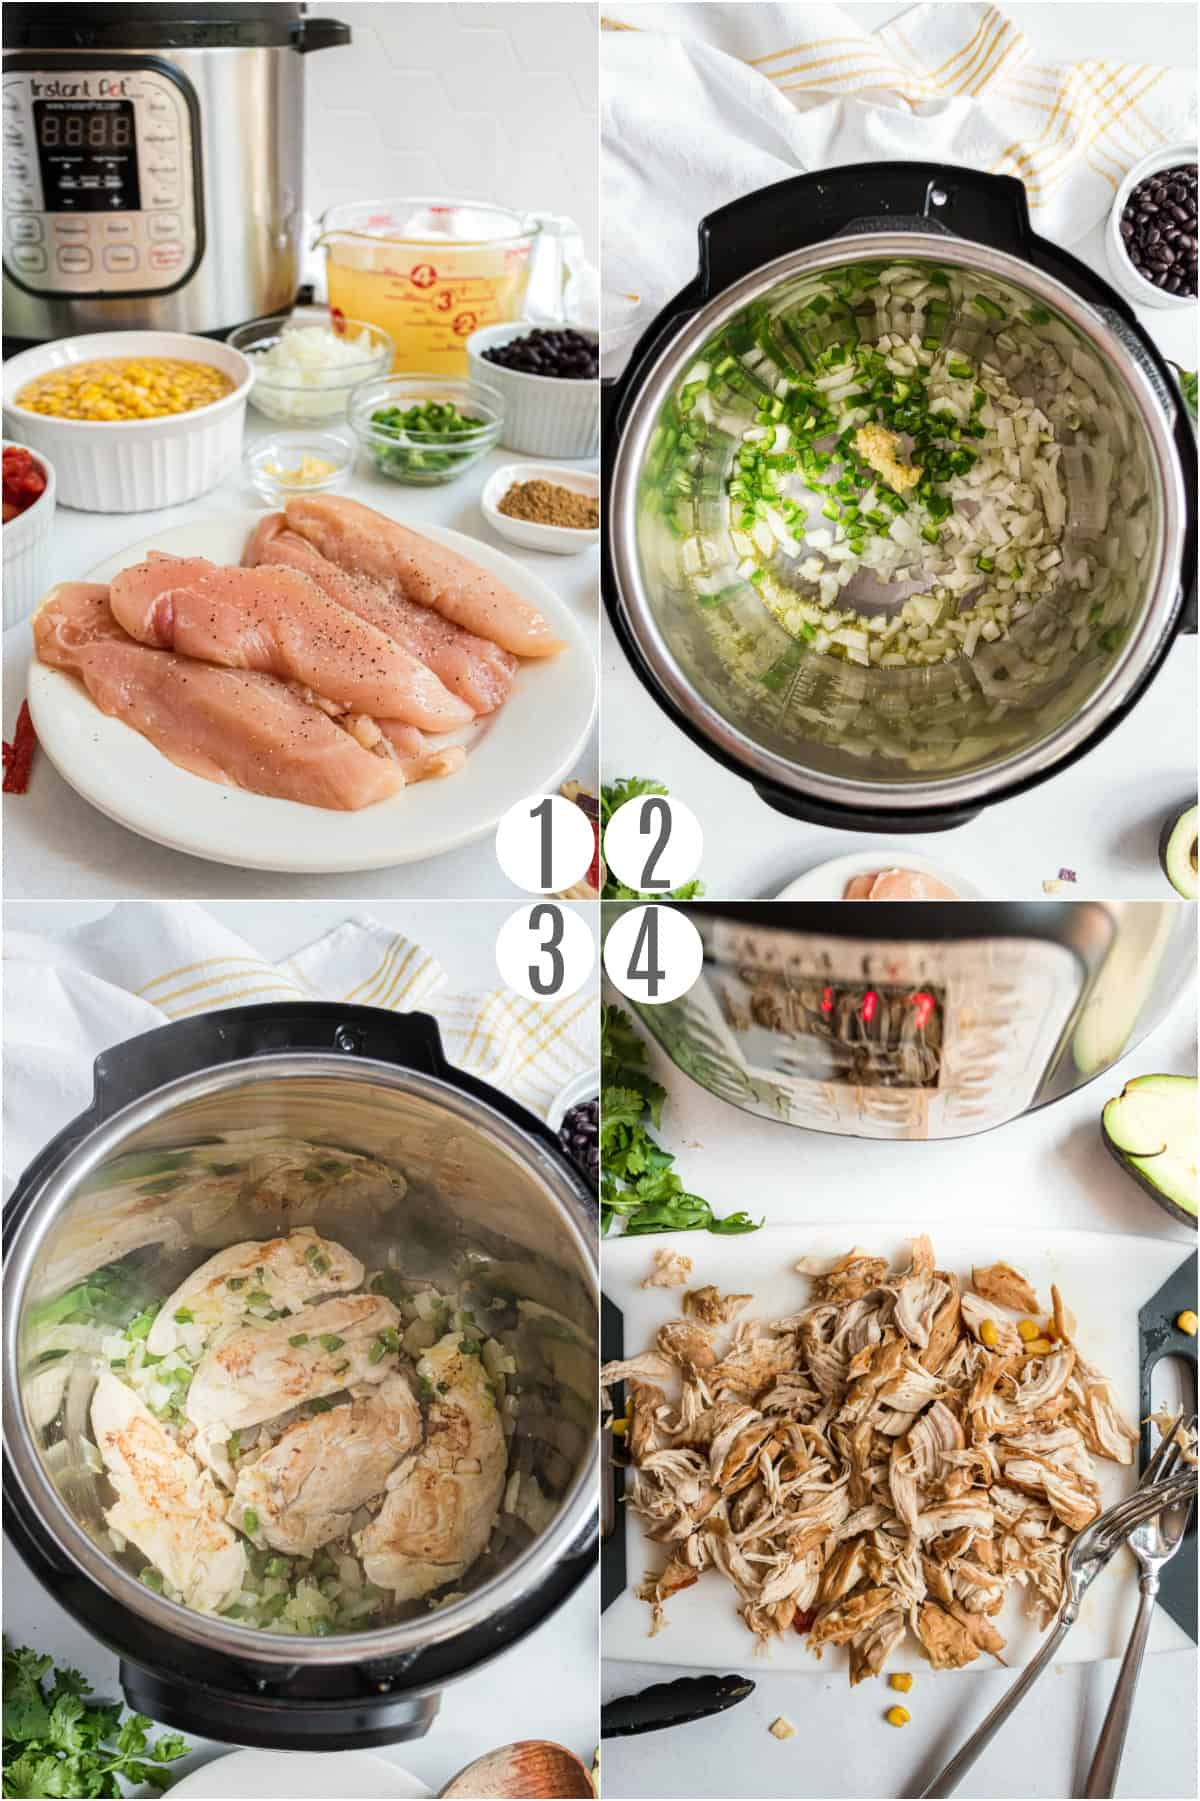 Step by step photos showing how to make chicken tortilla soup in the pressure cooker.